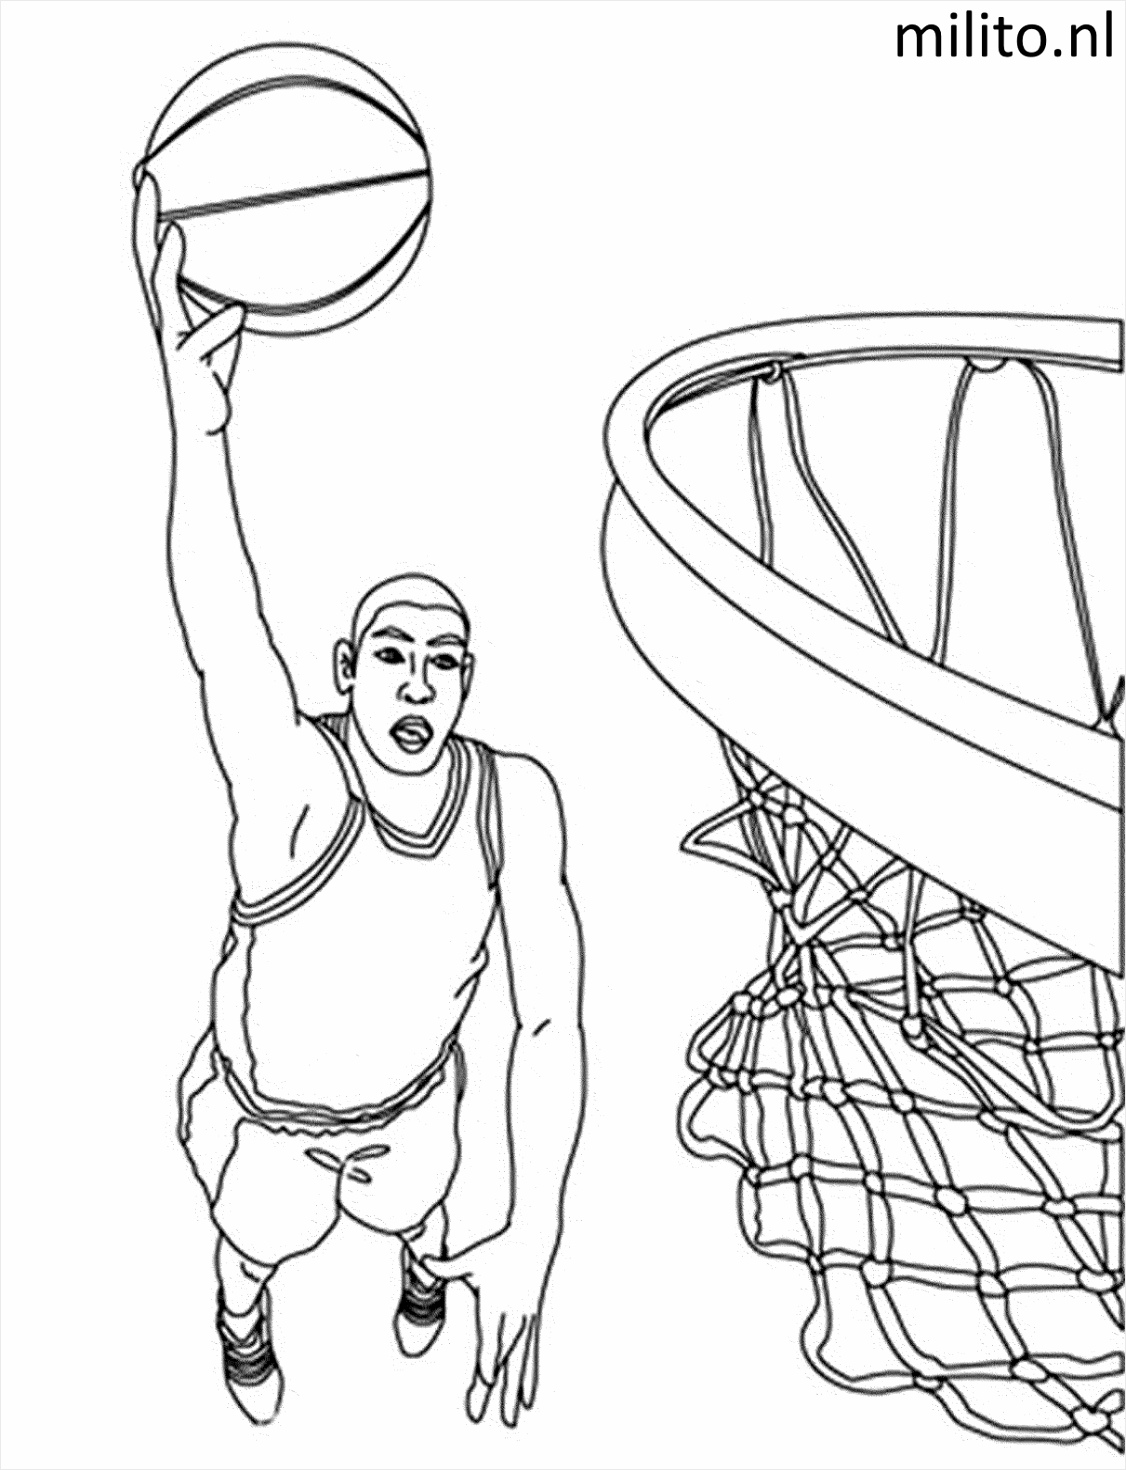 coloring pages print interesting basketball player stephen curry girl nba scaled rabto